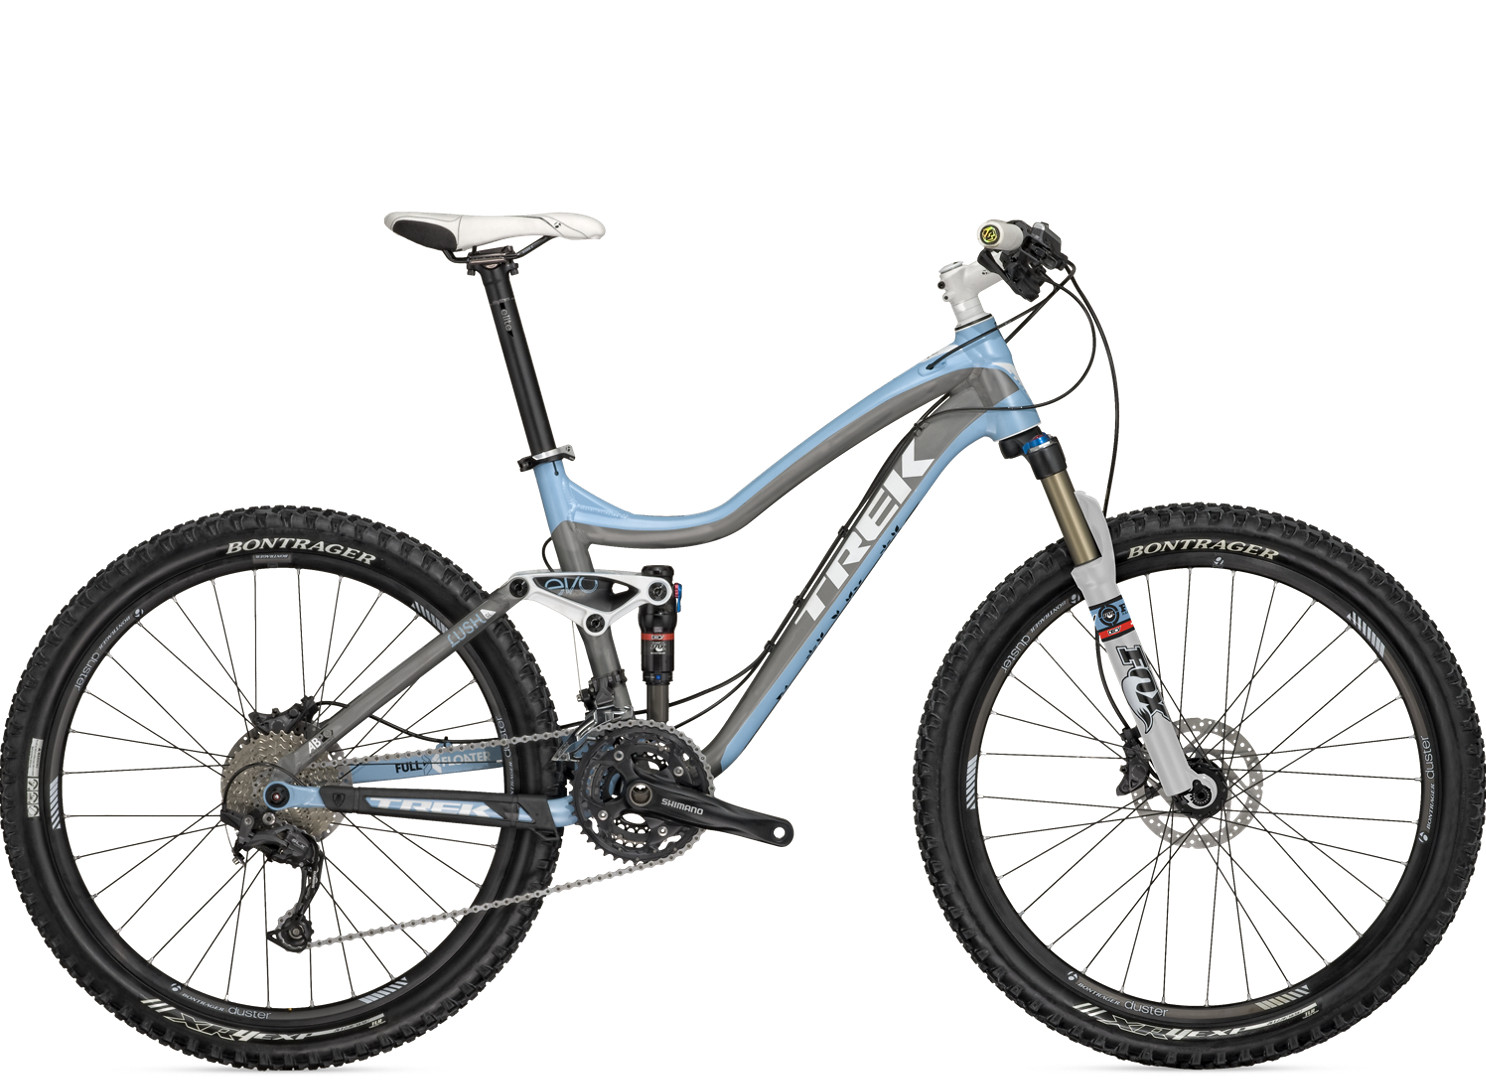 2012 Trek Lush SL Bike 26896